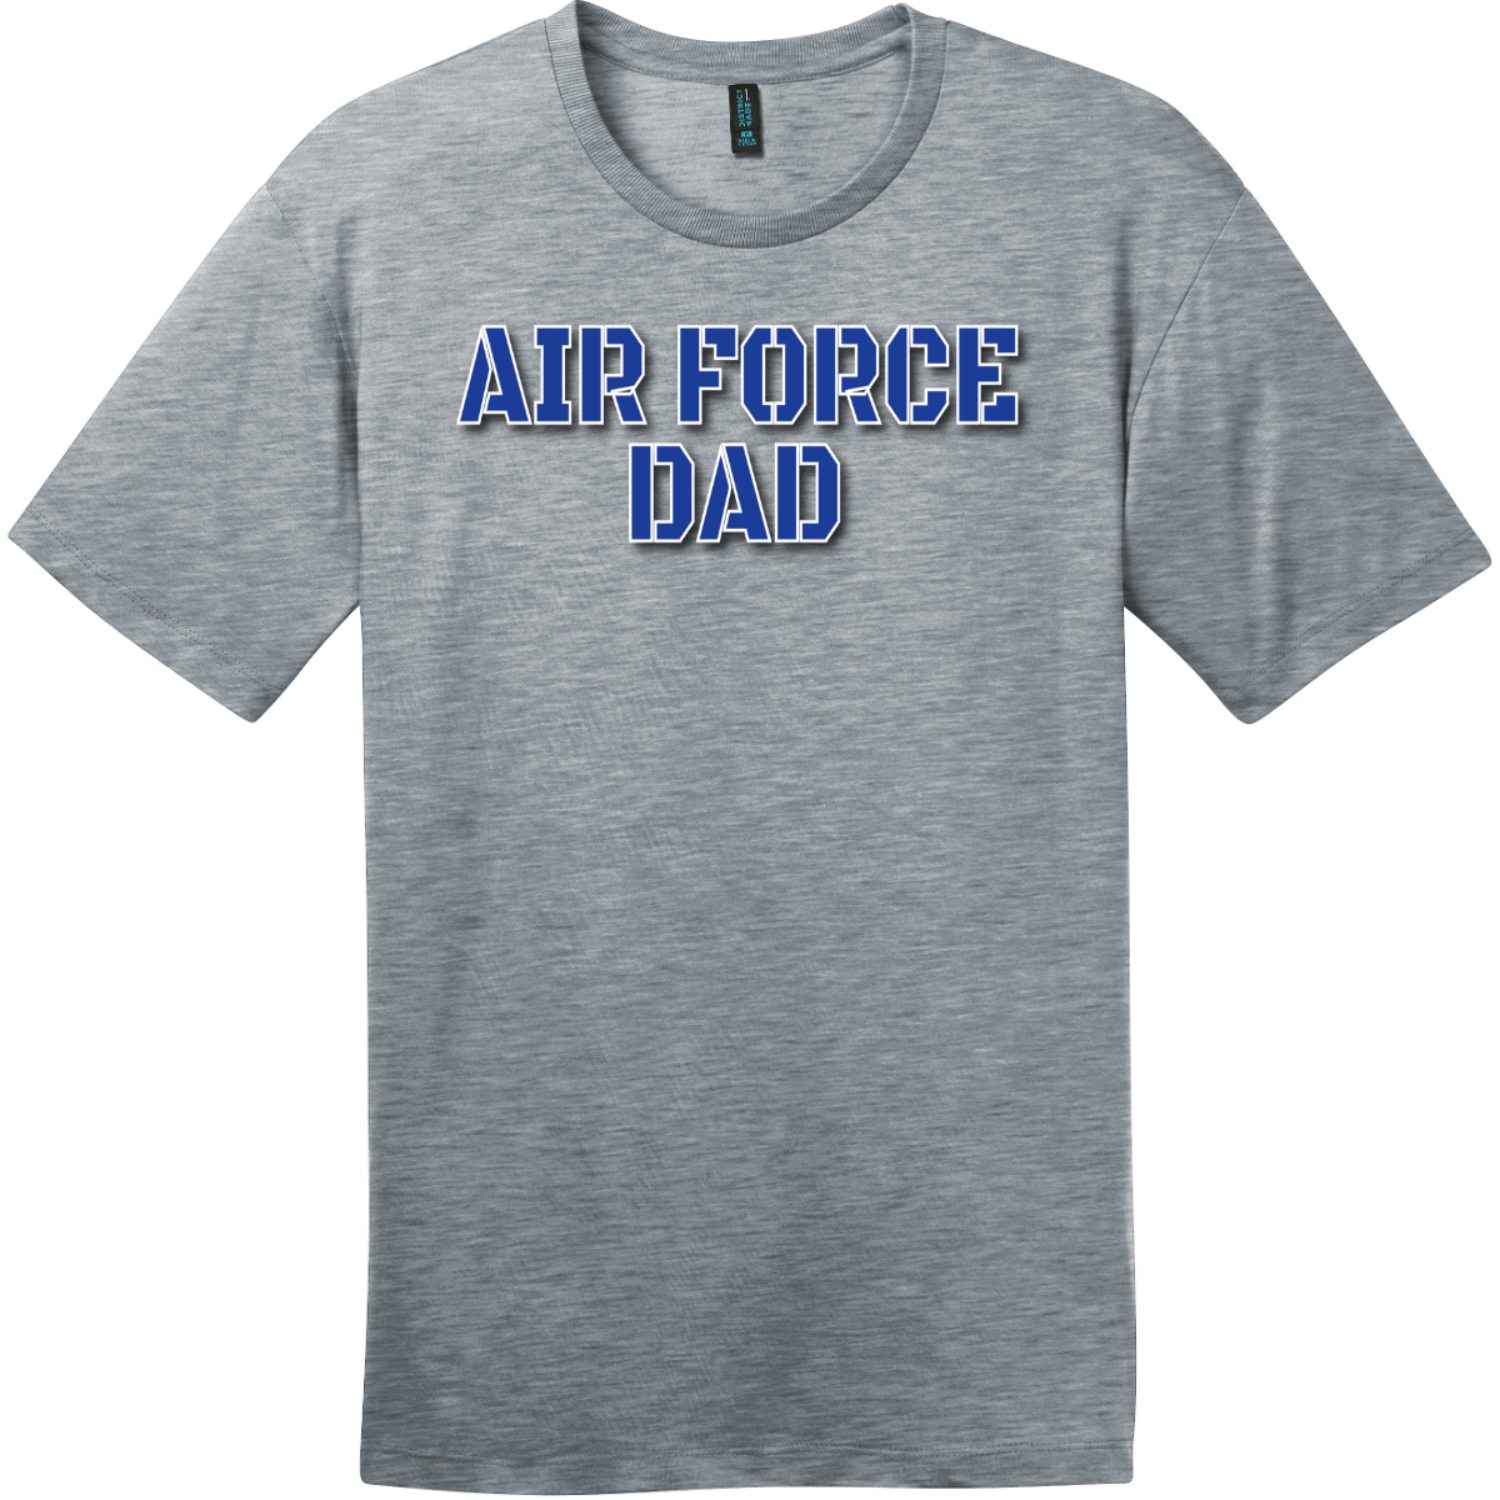 Air Force Dad T Shirt Heathered Steel District Perfect Weight Tee DT104